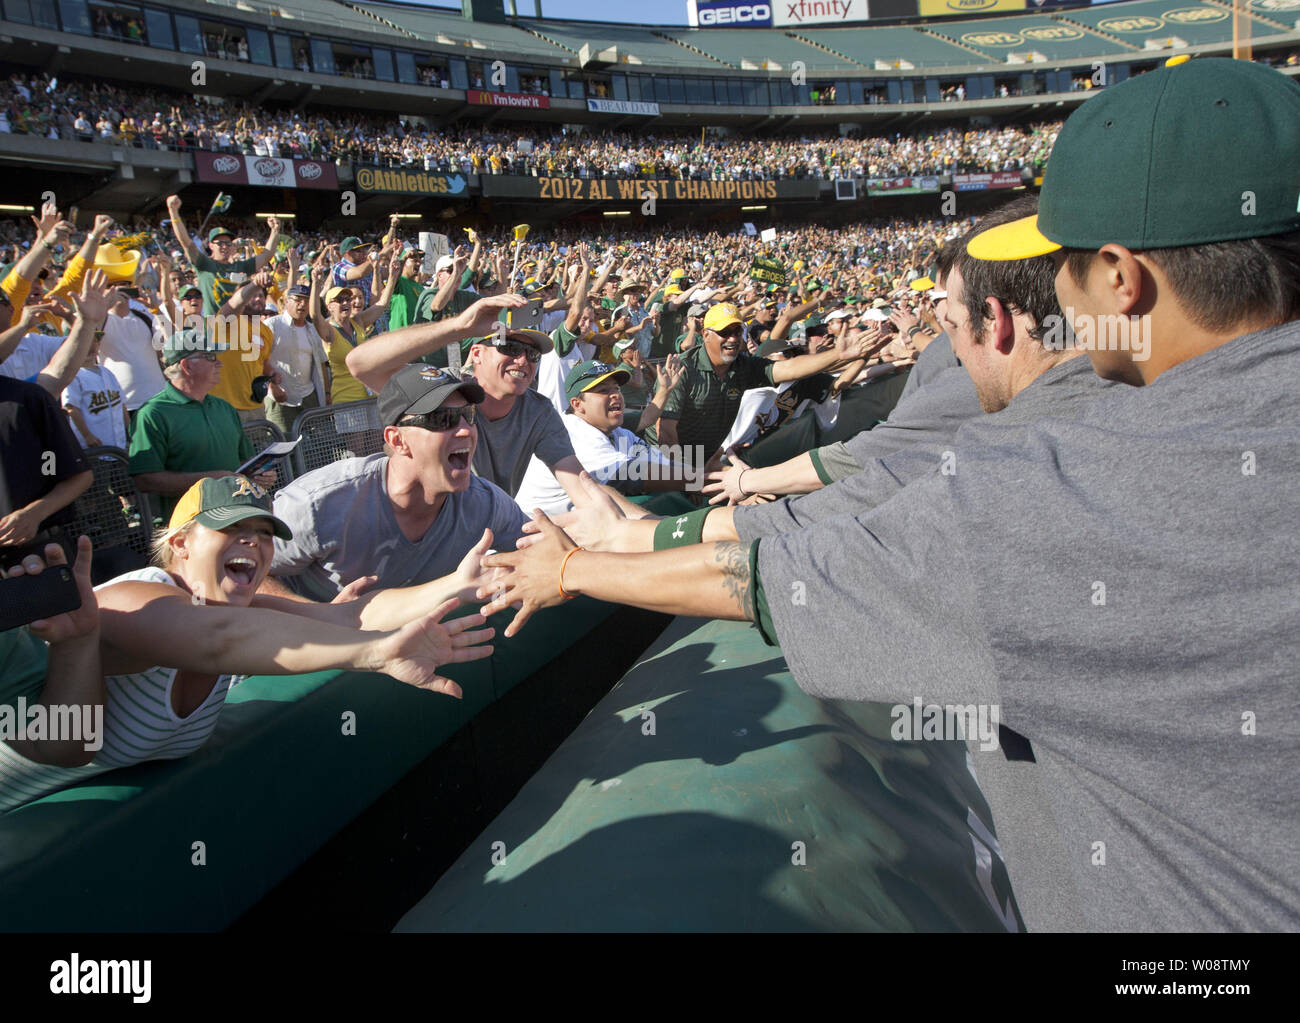 Fans reach to Oakland A's players after sweeping the Texas